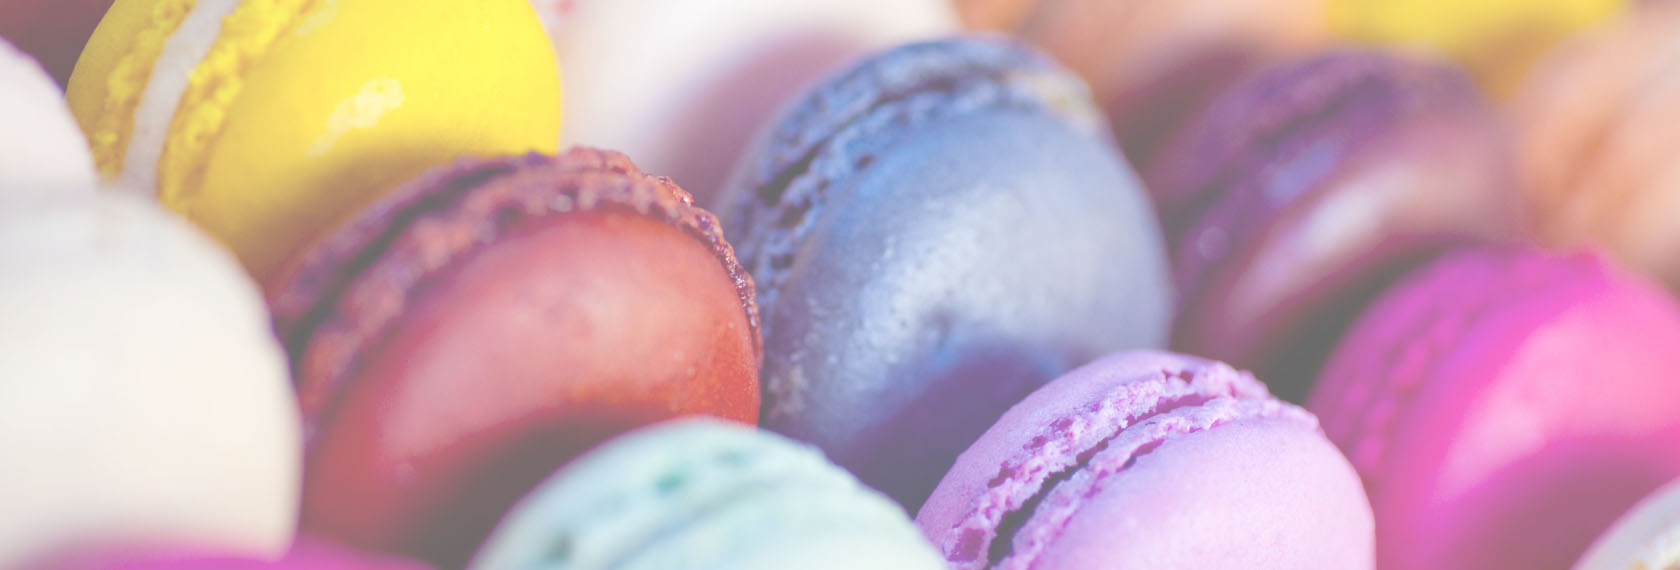 macarons-dimmed